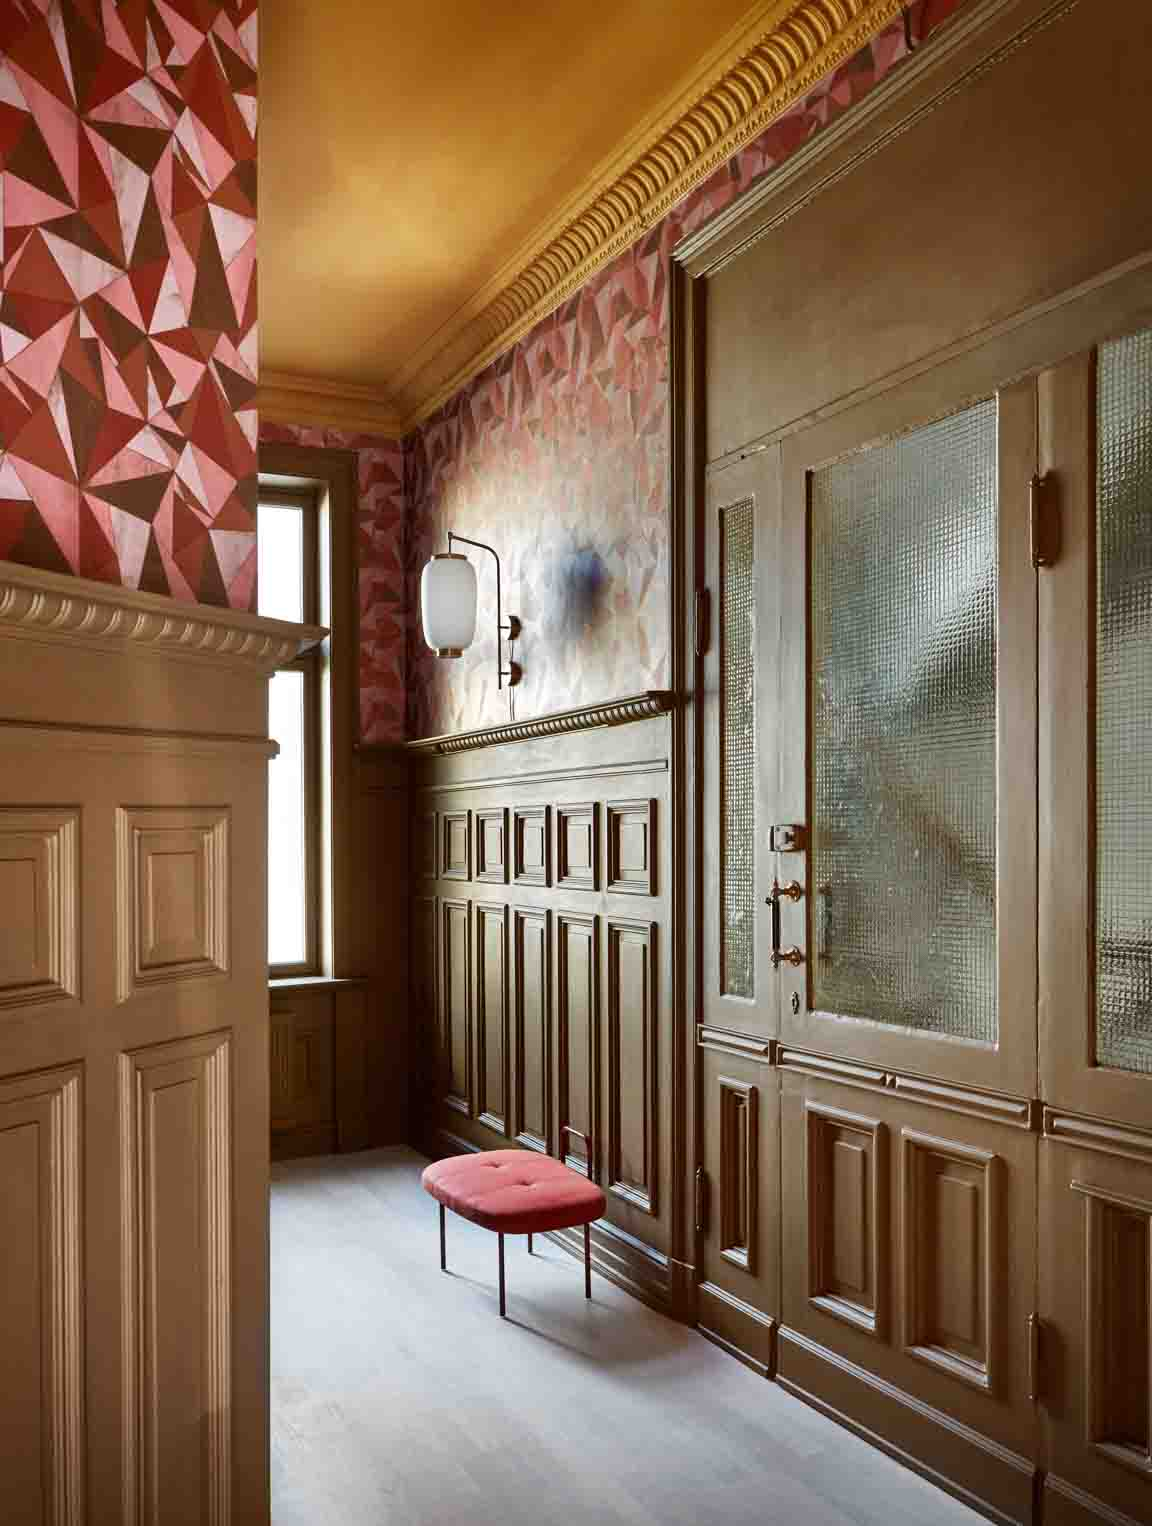 Hallway with light brown walls, red motif wallpaper, and ochre yellow ceiling